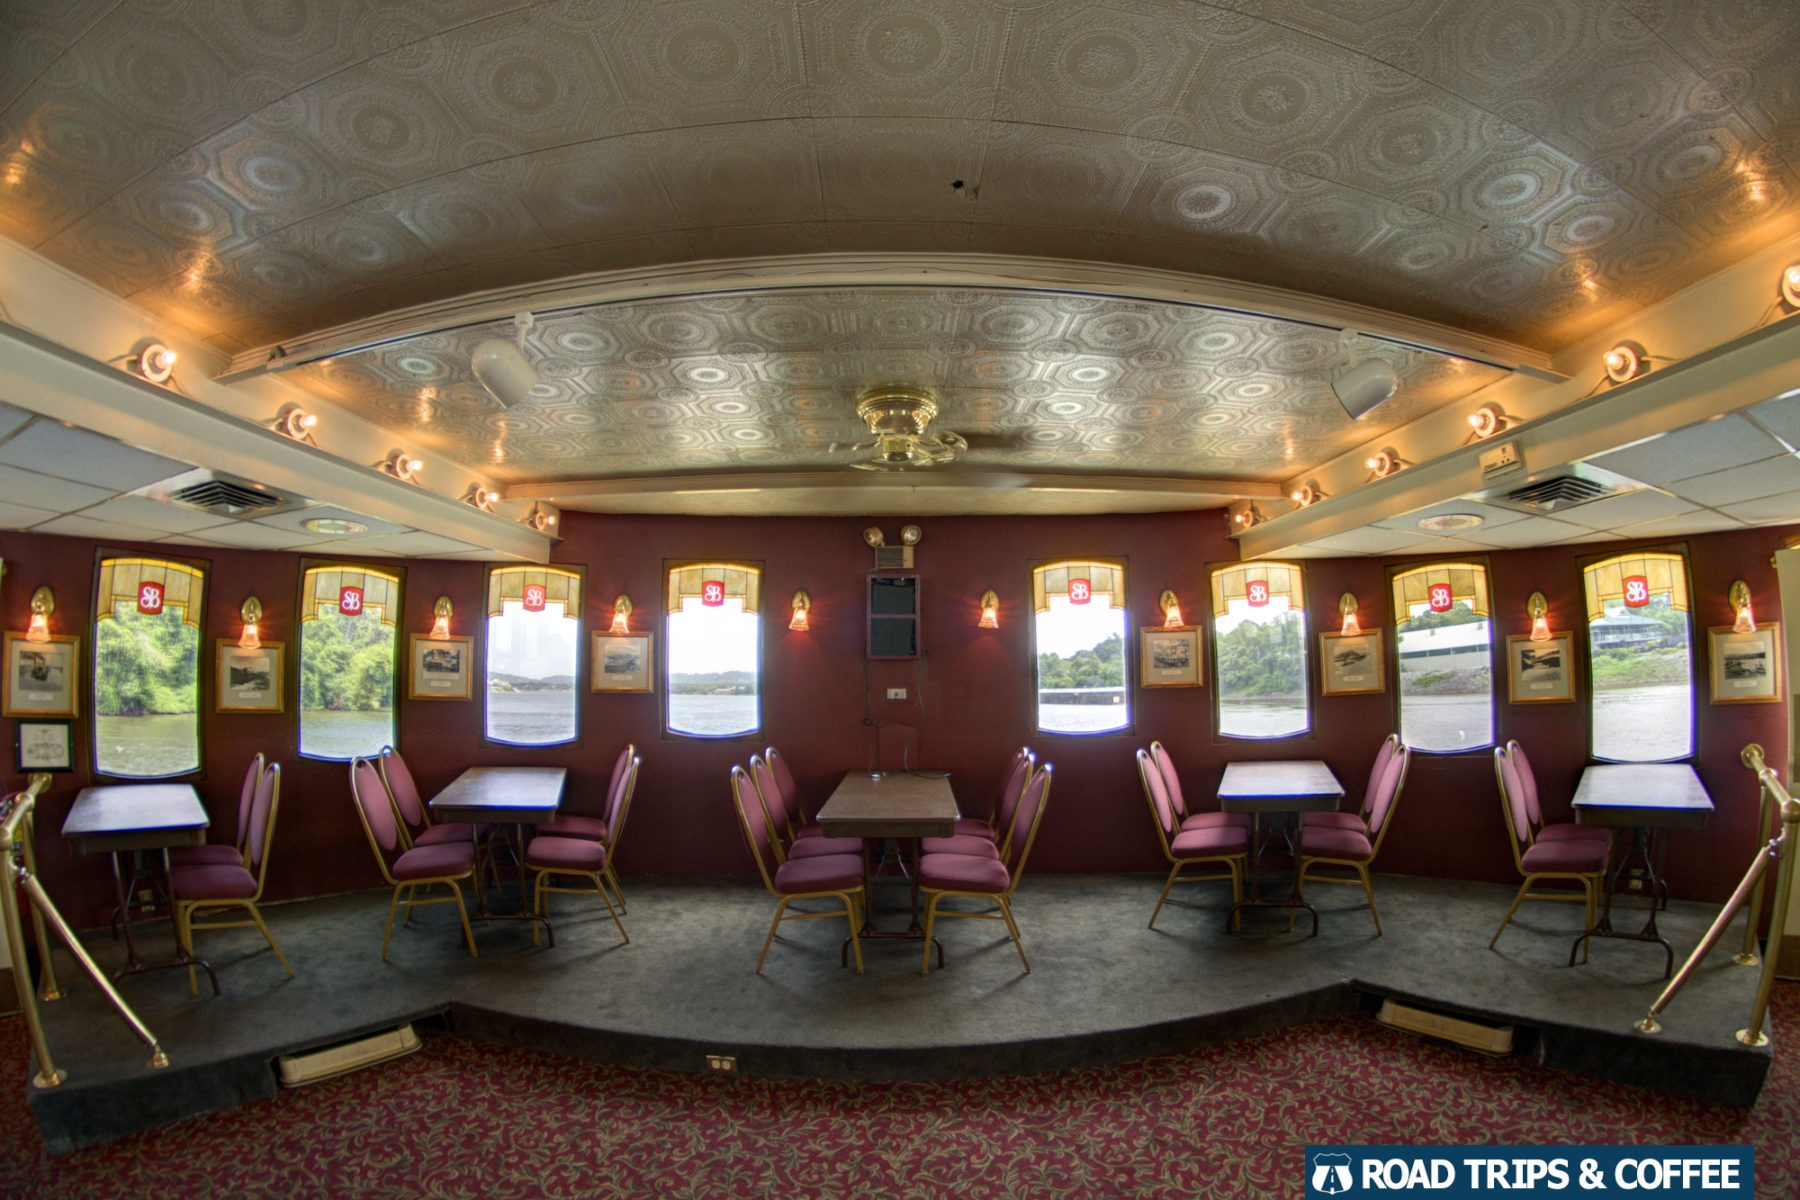 Comfortable indoor seating on the Southern Belle Riverboat during a tour on the Tennessee River in Chattanooga, Tennessee